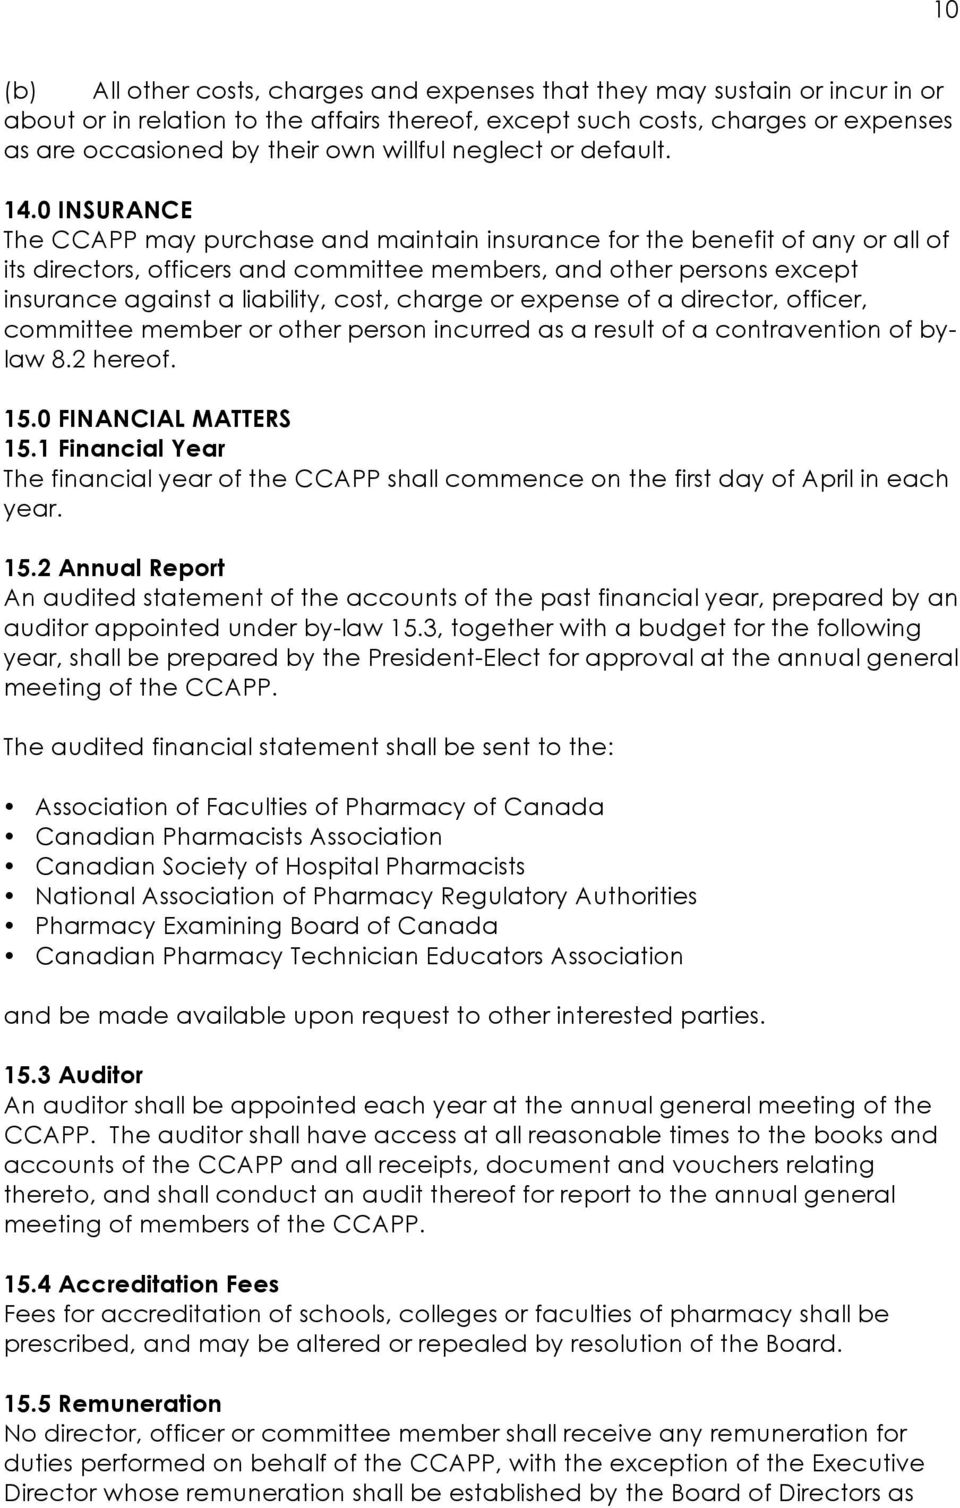 0 INSURANCE The CCAPP may purchase and maintain insurance for the benefit of any or all of its directors, officers and committee members, and other persons except insurance against a liability, cost,